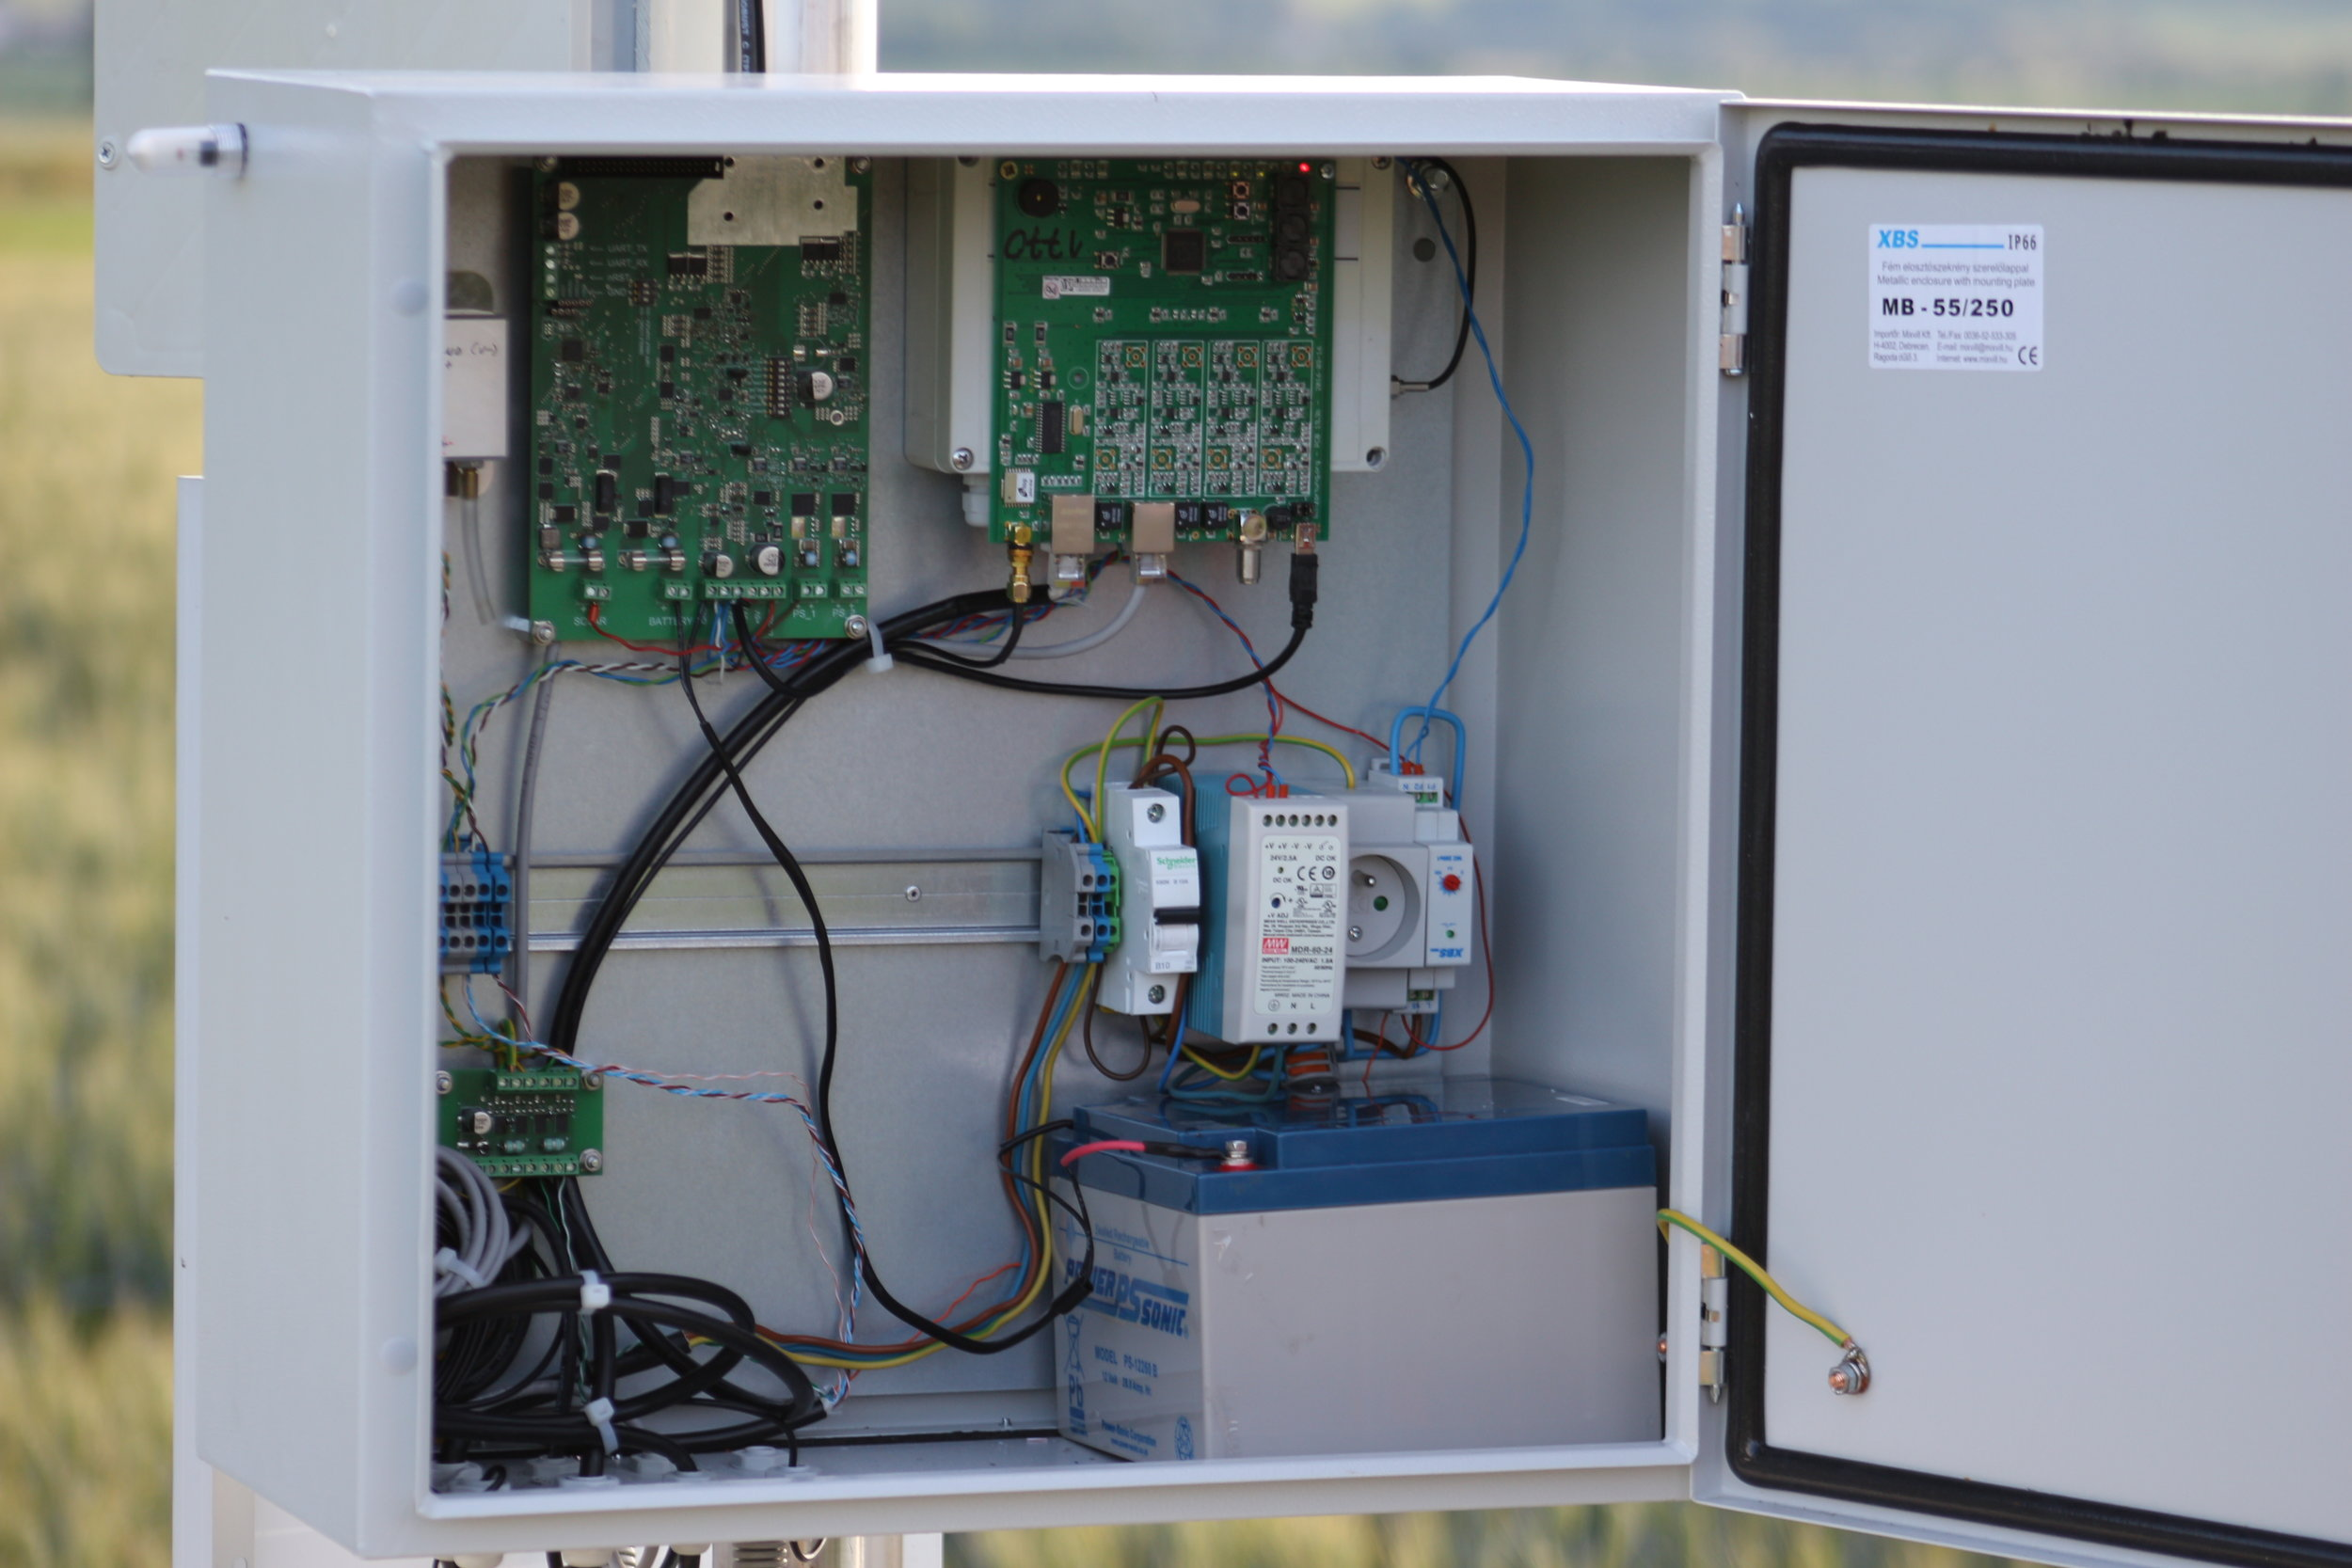 DETAIL OF METARLOGGSM WIRELESS DATA LOGGER, POWER PROTECT LIGHTNING PROTECTION AND POWER MANAGEMENT BOARD AT JASNA AERODROME AUTO-METAR INSTALLATION